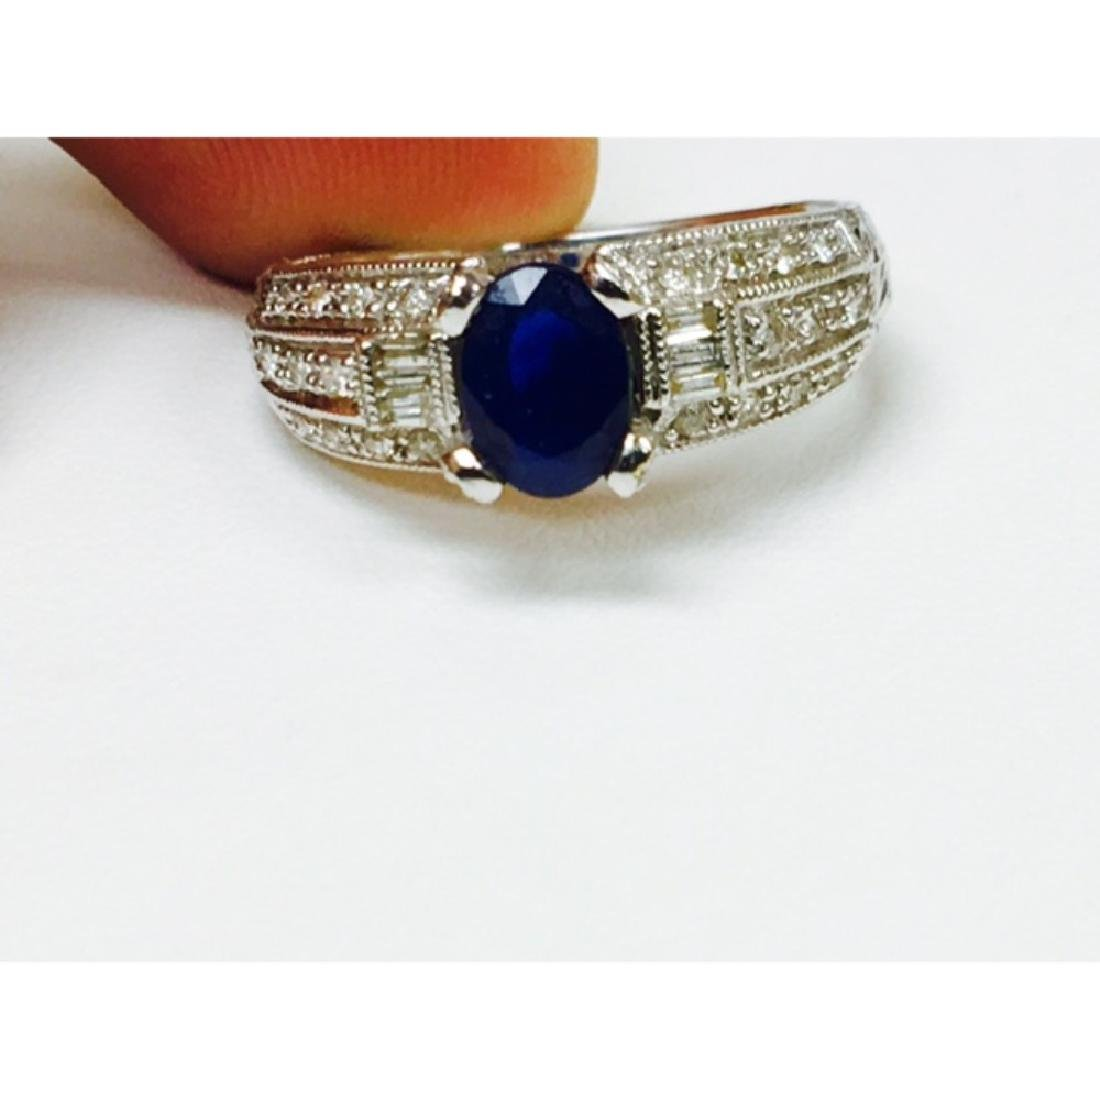 1.50 Carat Natural Blue Sapphire and Diamond Ring